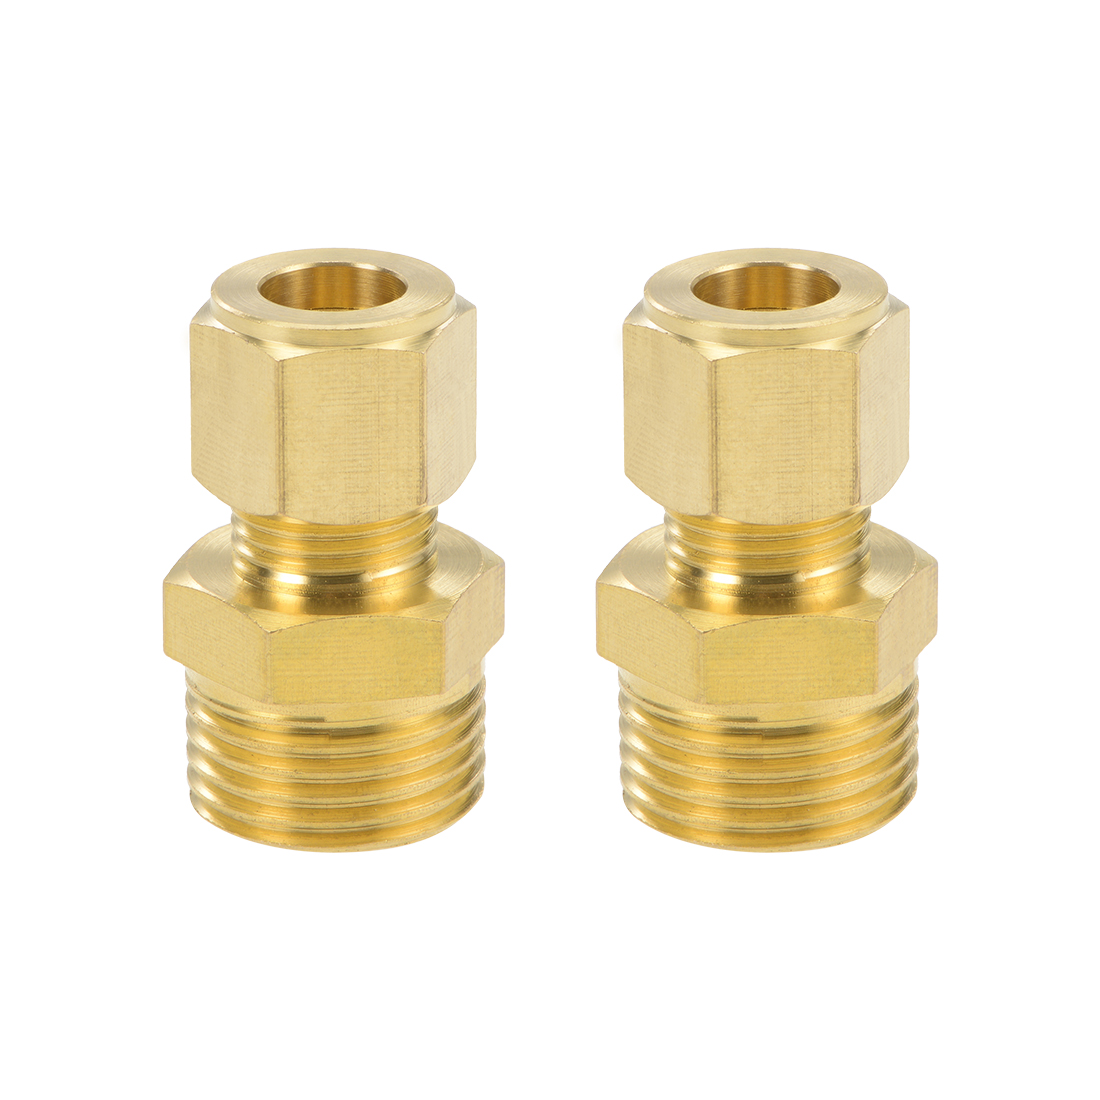 Brass Compression Tube Fitting 9.6mm OD 1/2 NPT Thread Pipe Adapter 2pcs